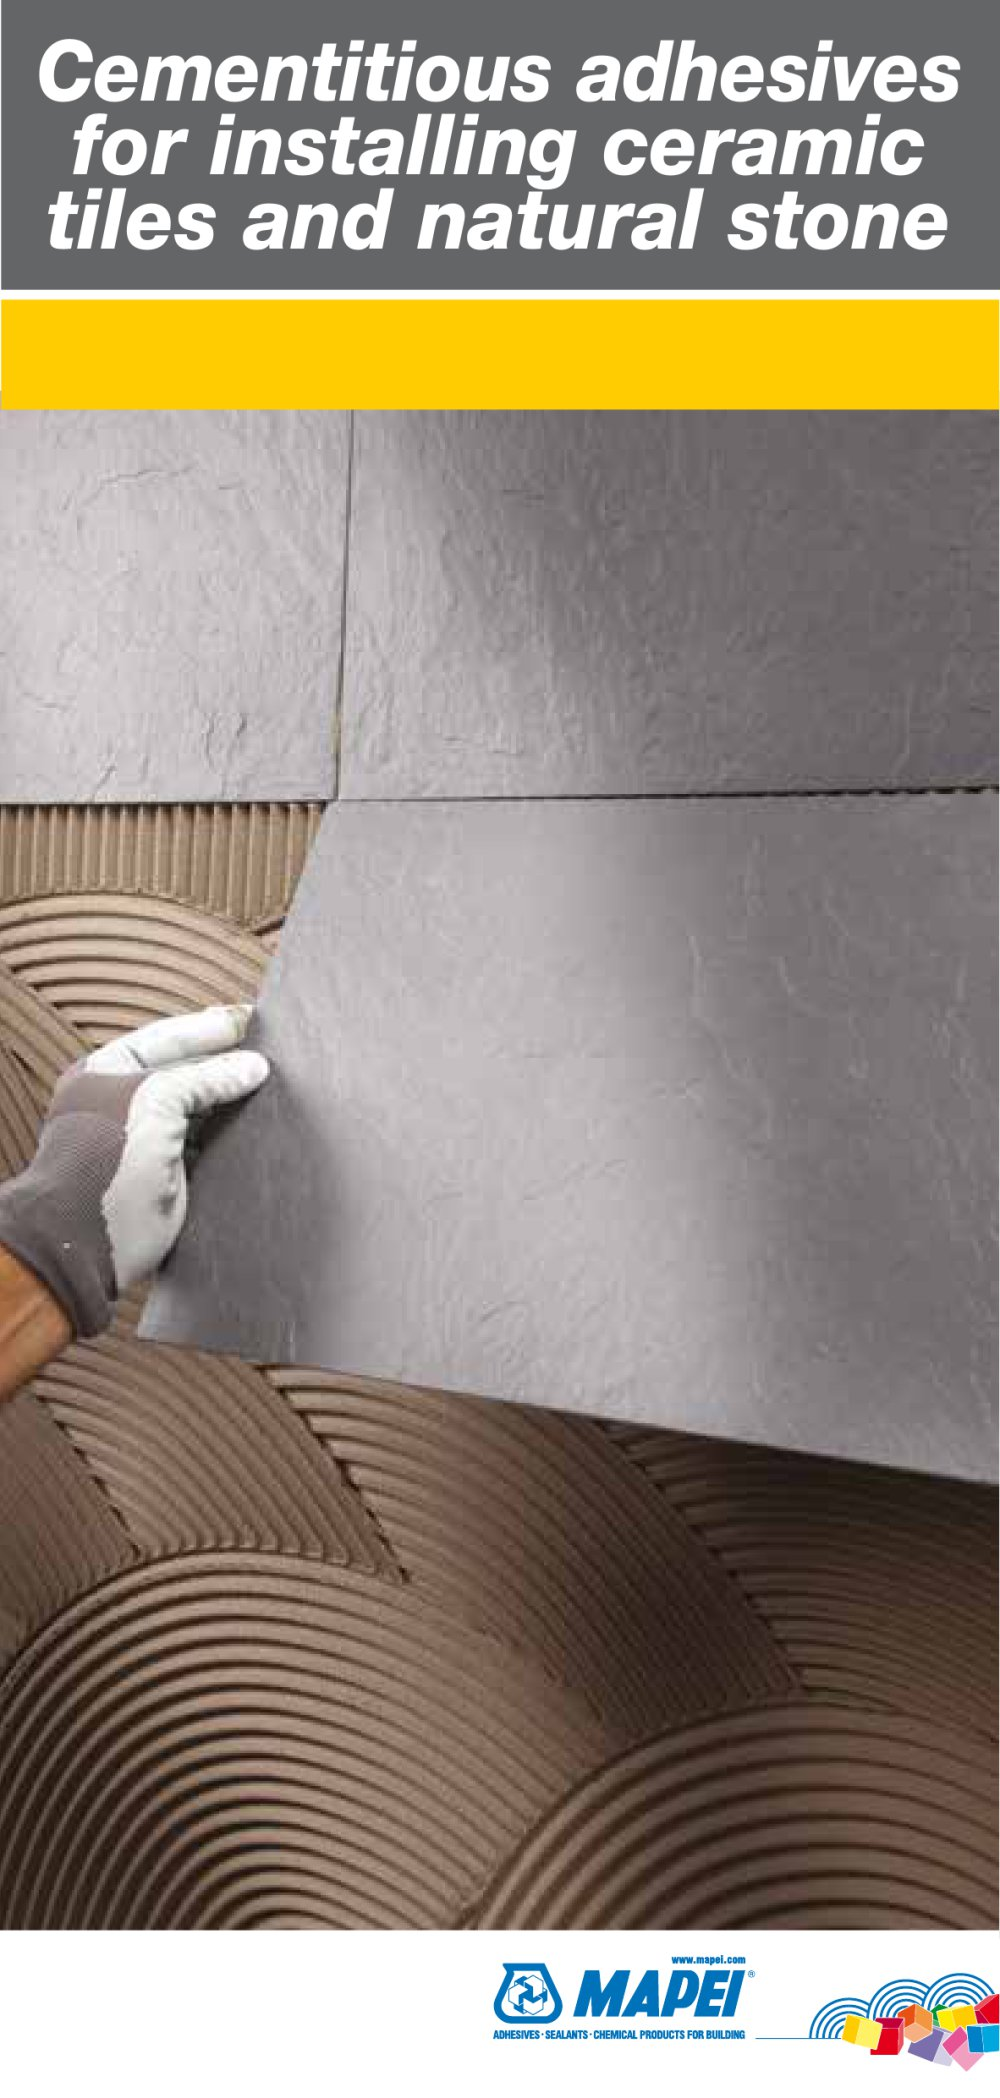 Cementitious adhesives for installing ceramic tiles ad natural stone cementitious adhesives for installing ceramic tiles ad natural stone 1 24 pages dailygadgetfo Choice Image